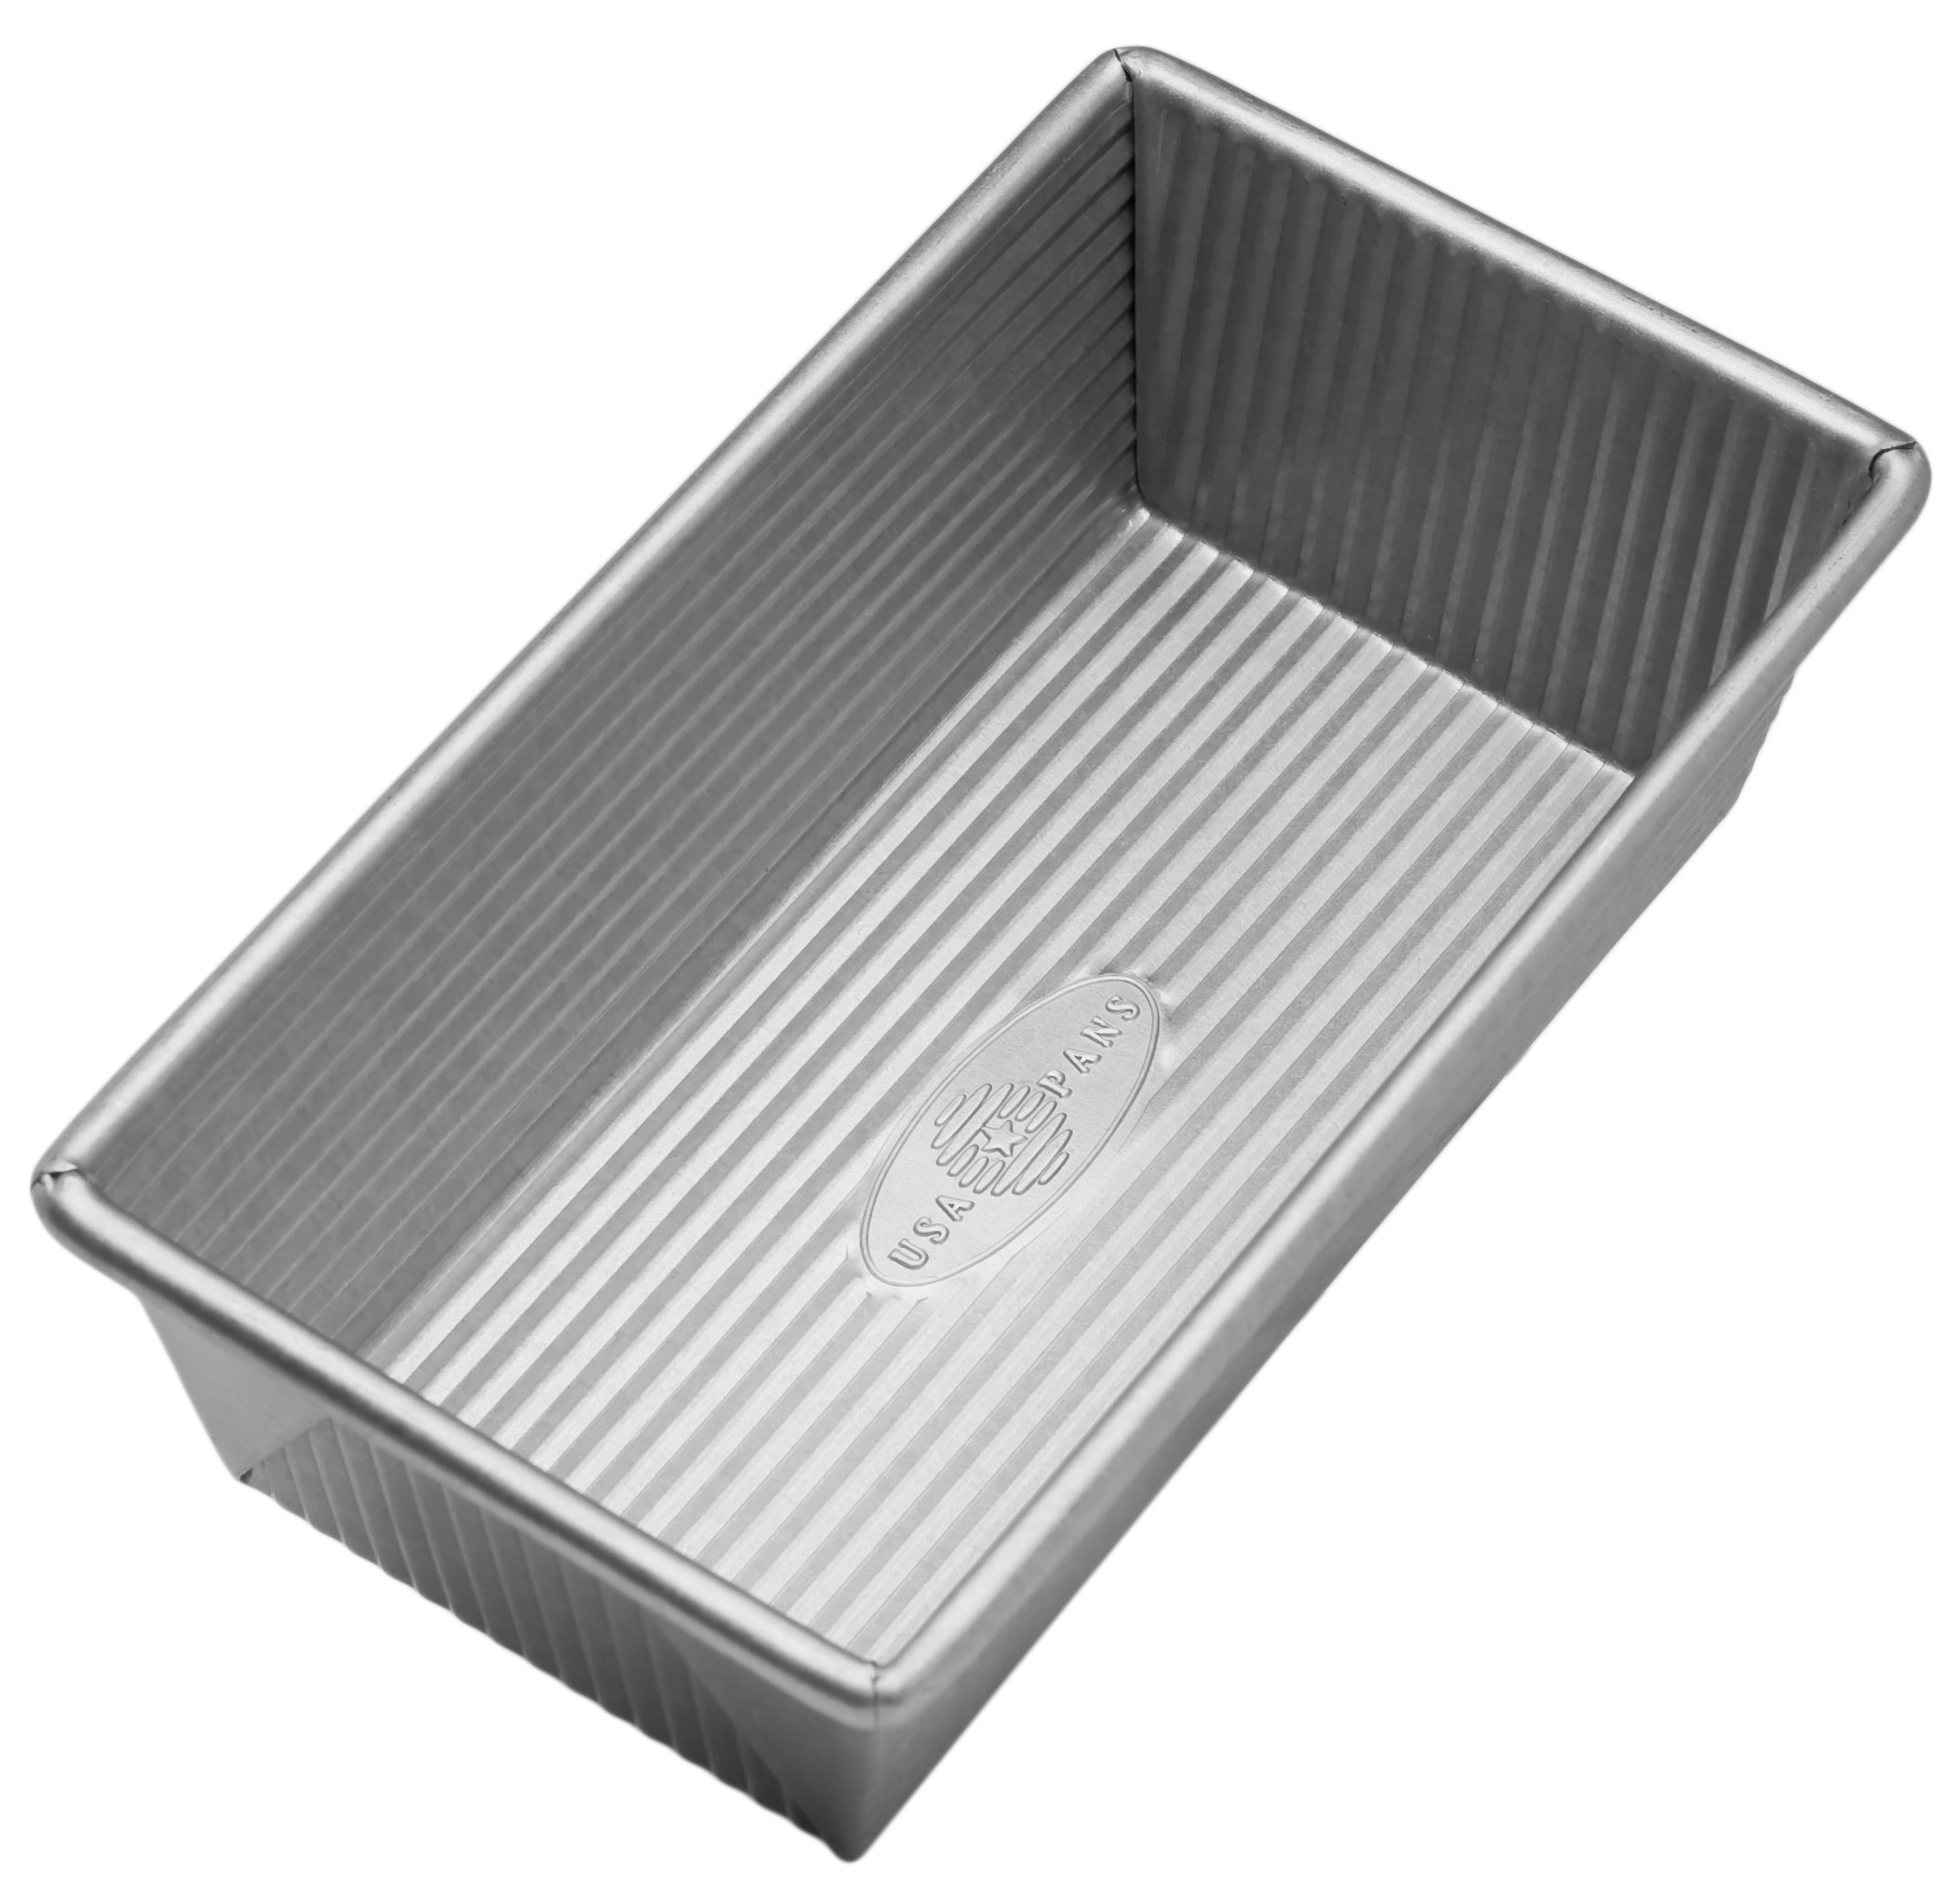 USA Pan Bakeware Aluminized Steel Loaf Pan 1140LF 8.5 x 4.5 x 3 Inch, Small, Silver by USA Pan